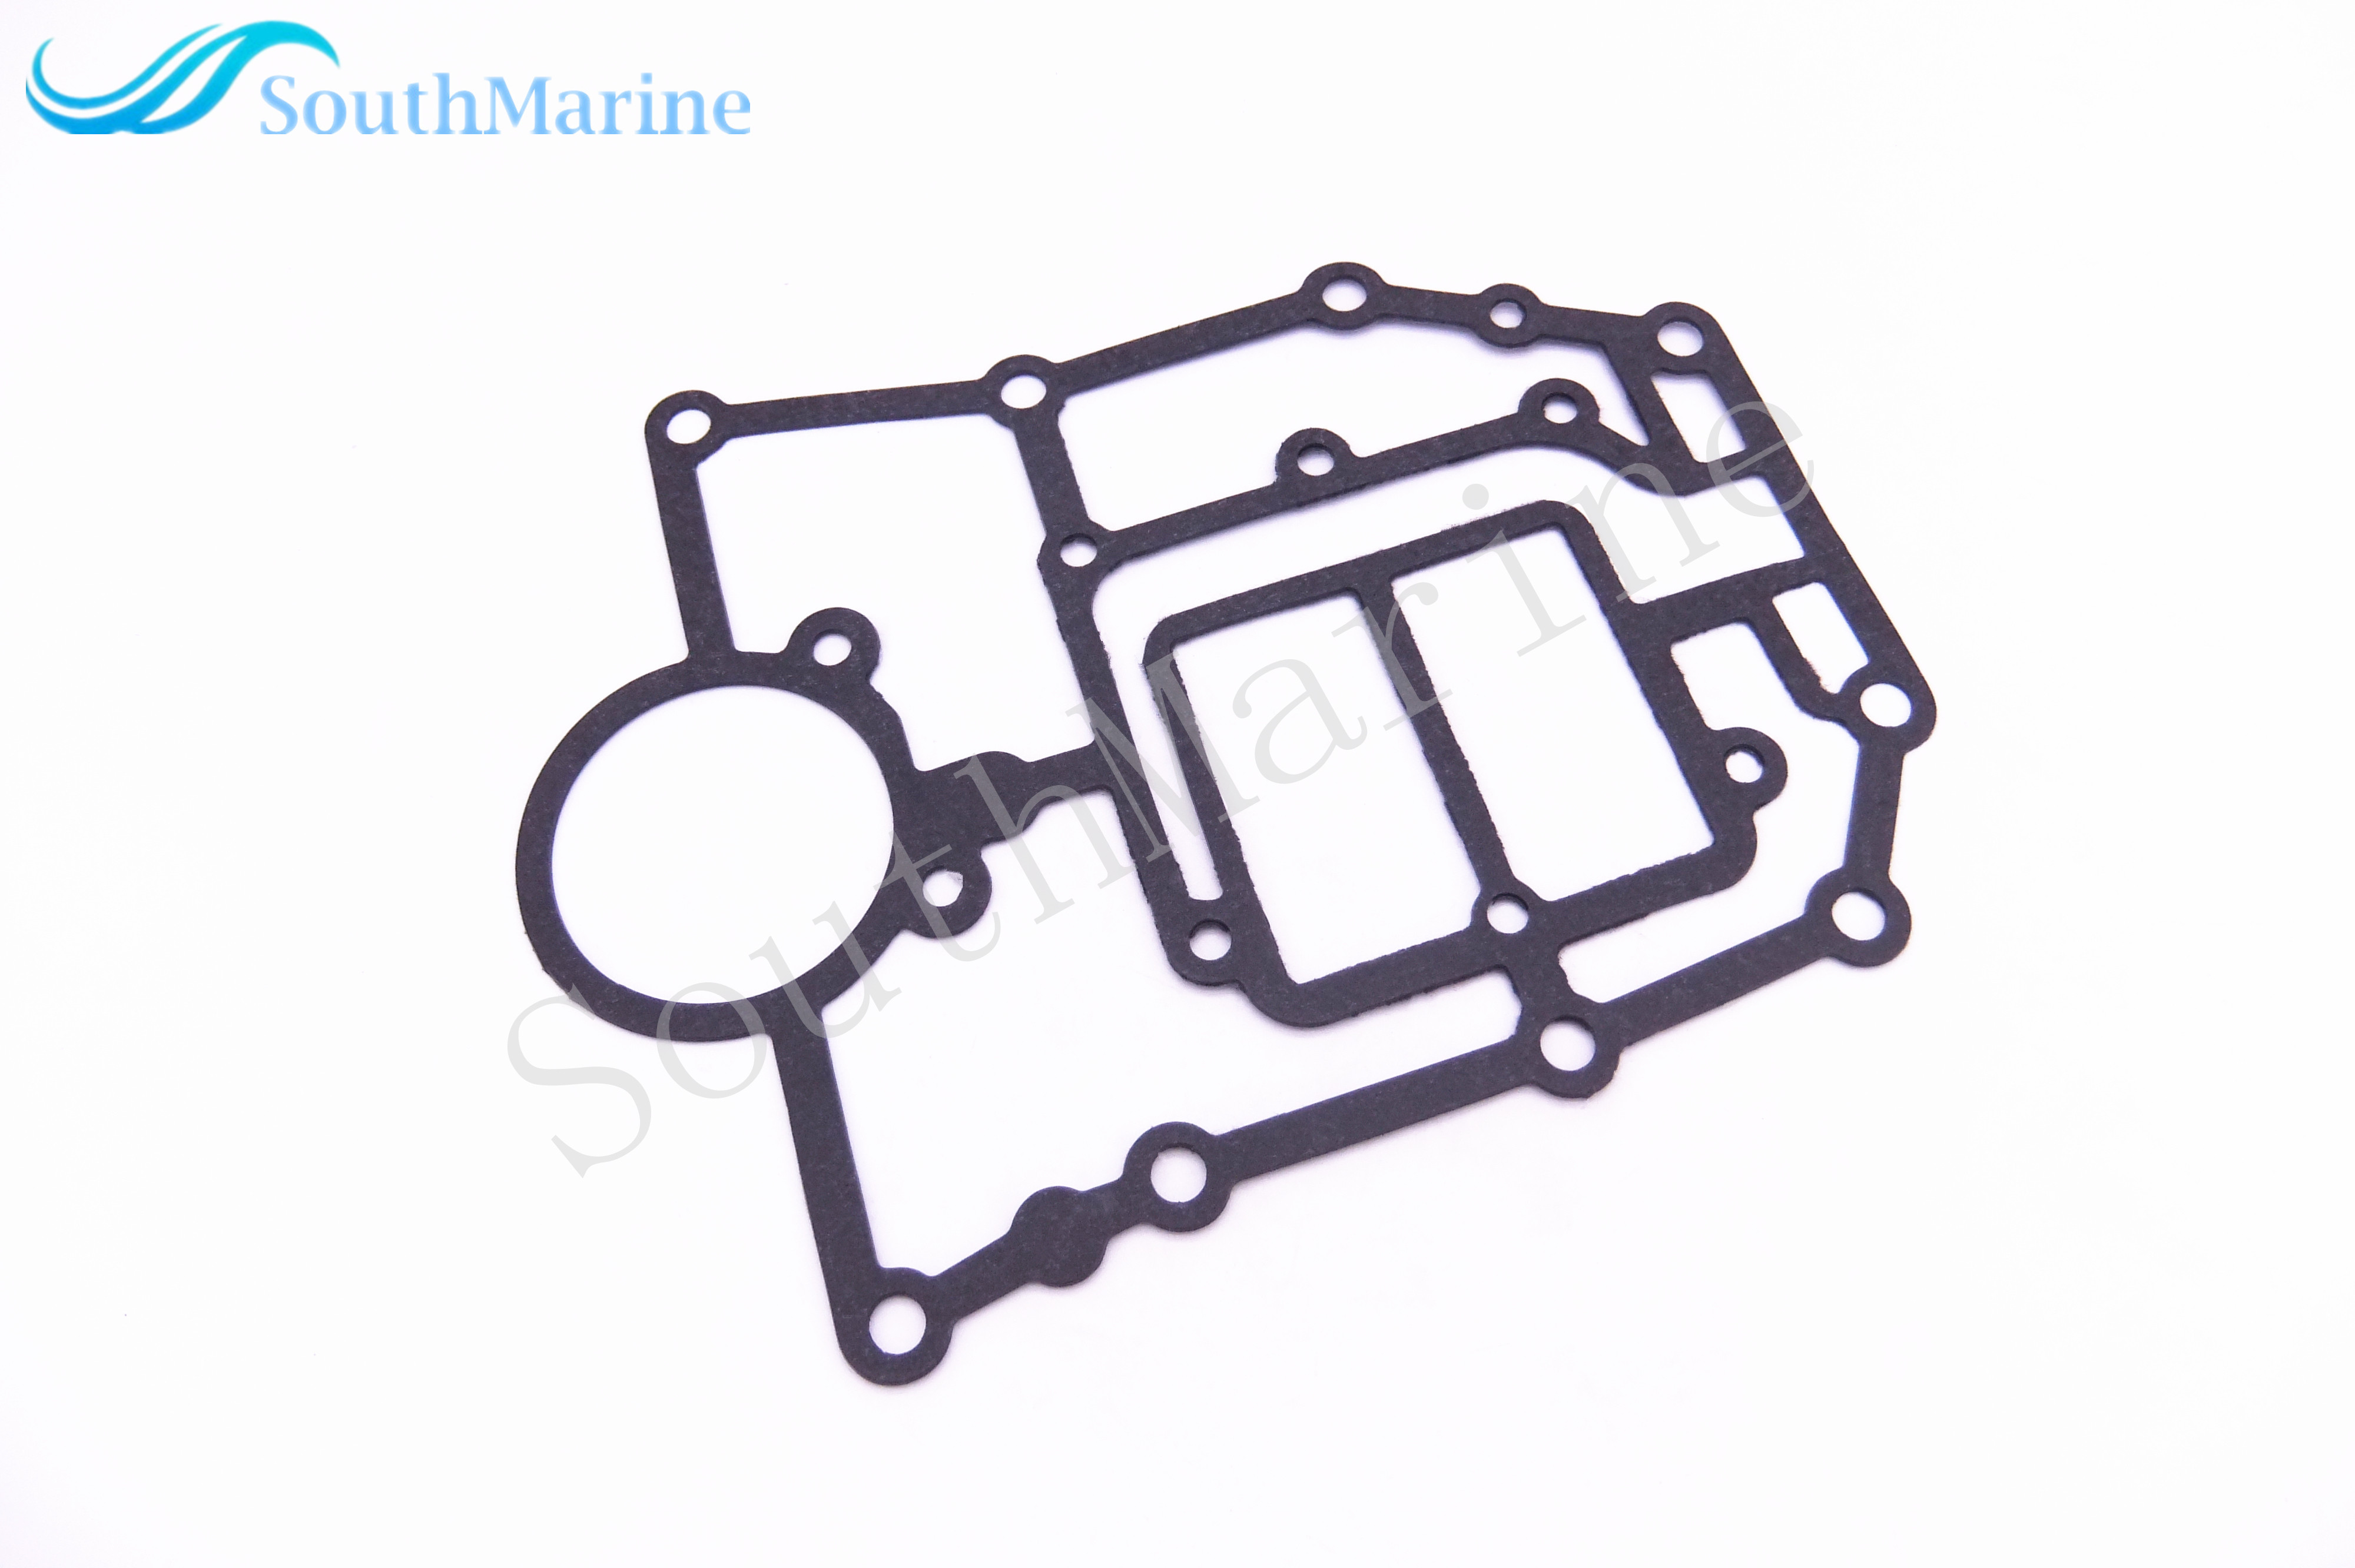 small resolution of 11433 94412 boat motor gasket under oil seal for suzuki 40hp dt40 outboard engine 11433 94411 in boat engine from automobiles motorcycles on